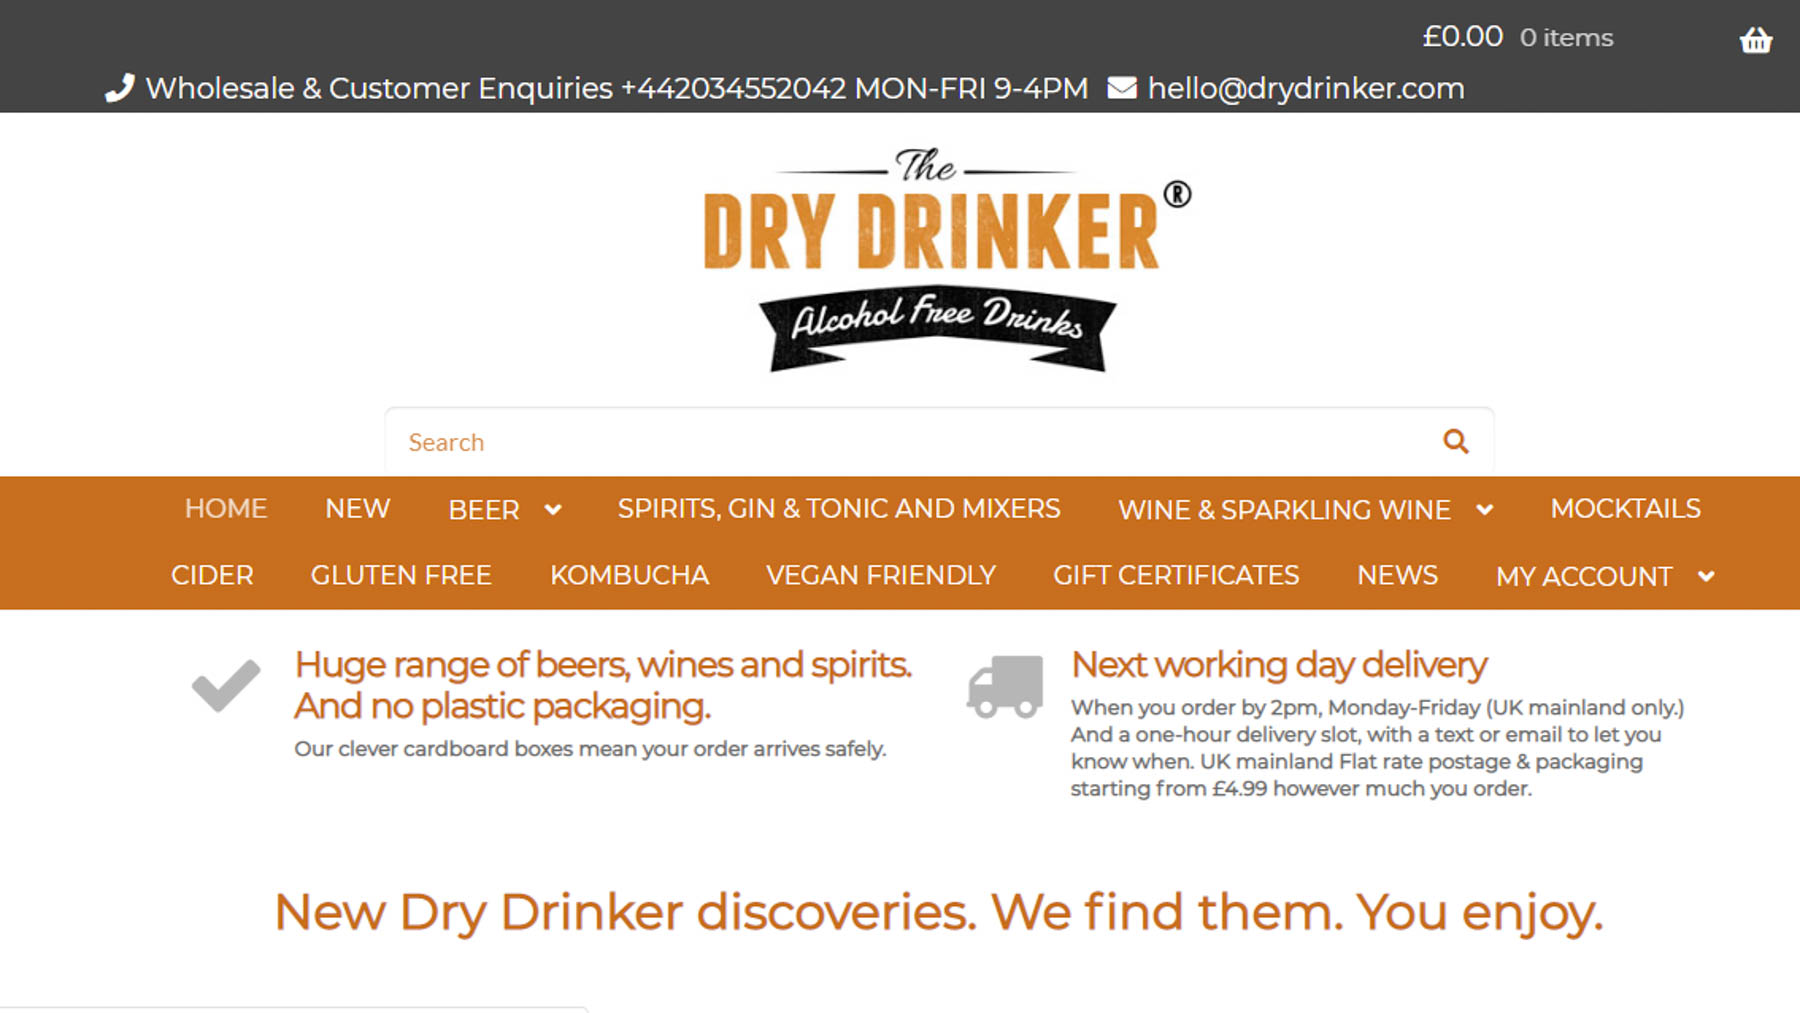 image of drydrinker.com web page